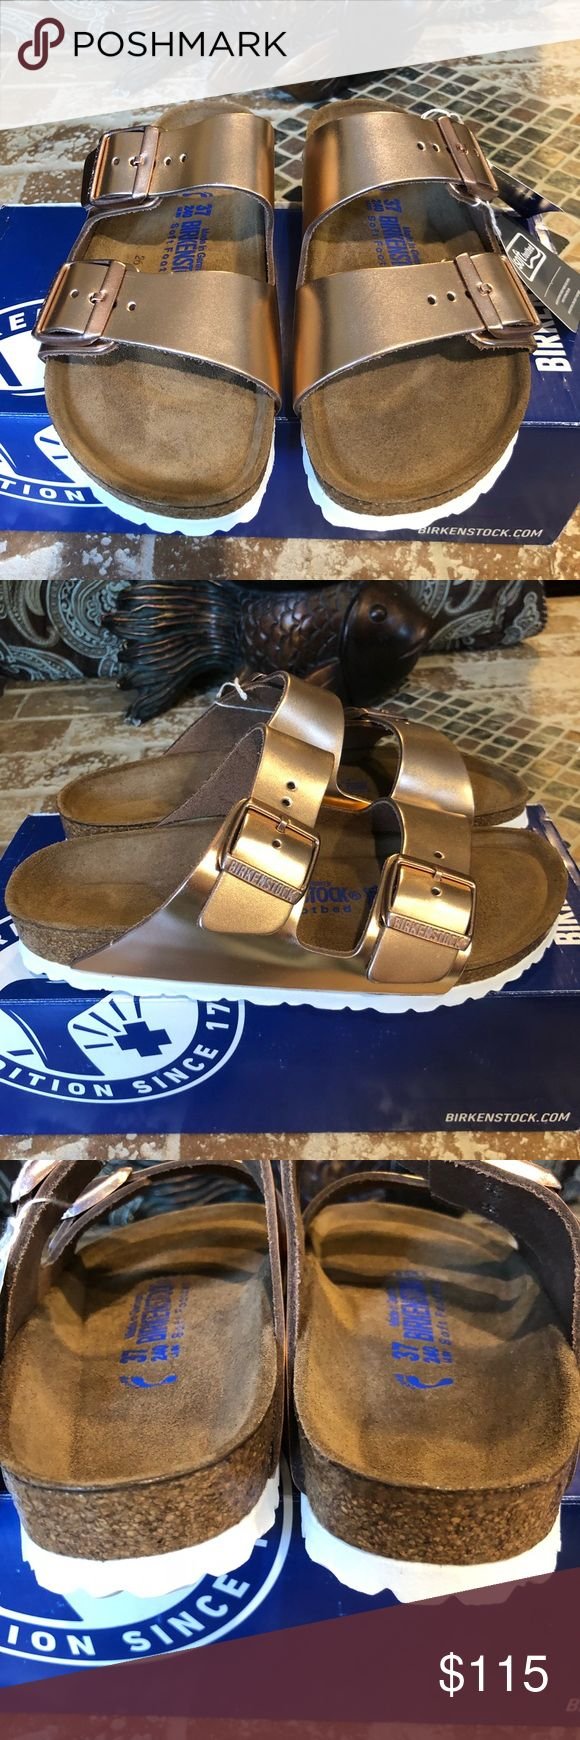 Birkenstock NWT Size 37 L6 Narrow Fit Brand new. Original box Arizona Natural Leather Soft Footbed Metallic Copper The often imitated, never duplicated, category-defining, two-strap wonder from Birkenstock. A comfort legend and a fashion staple. With adjustable straps and a magical cork footbed that conforms to the shape of your foot, a truly custom fit is as effortless as the classic design. Birkenstock Shoes Sandals